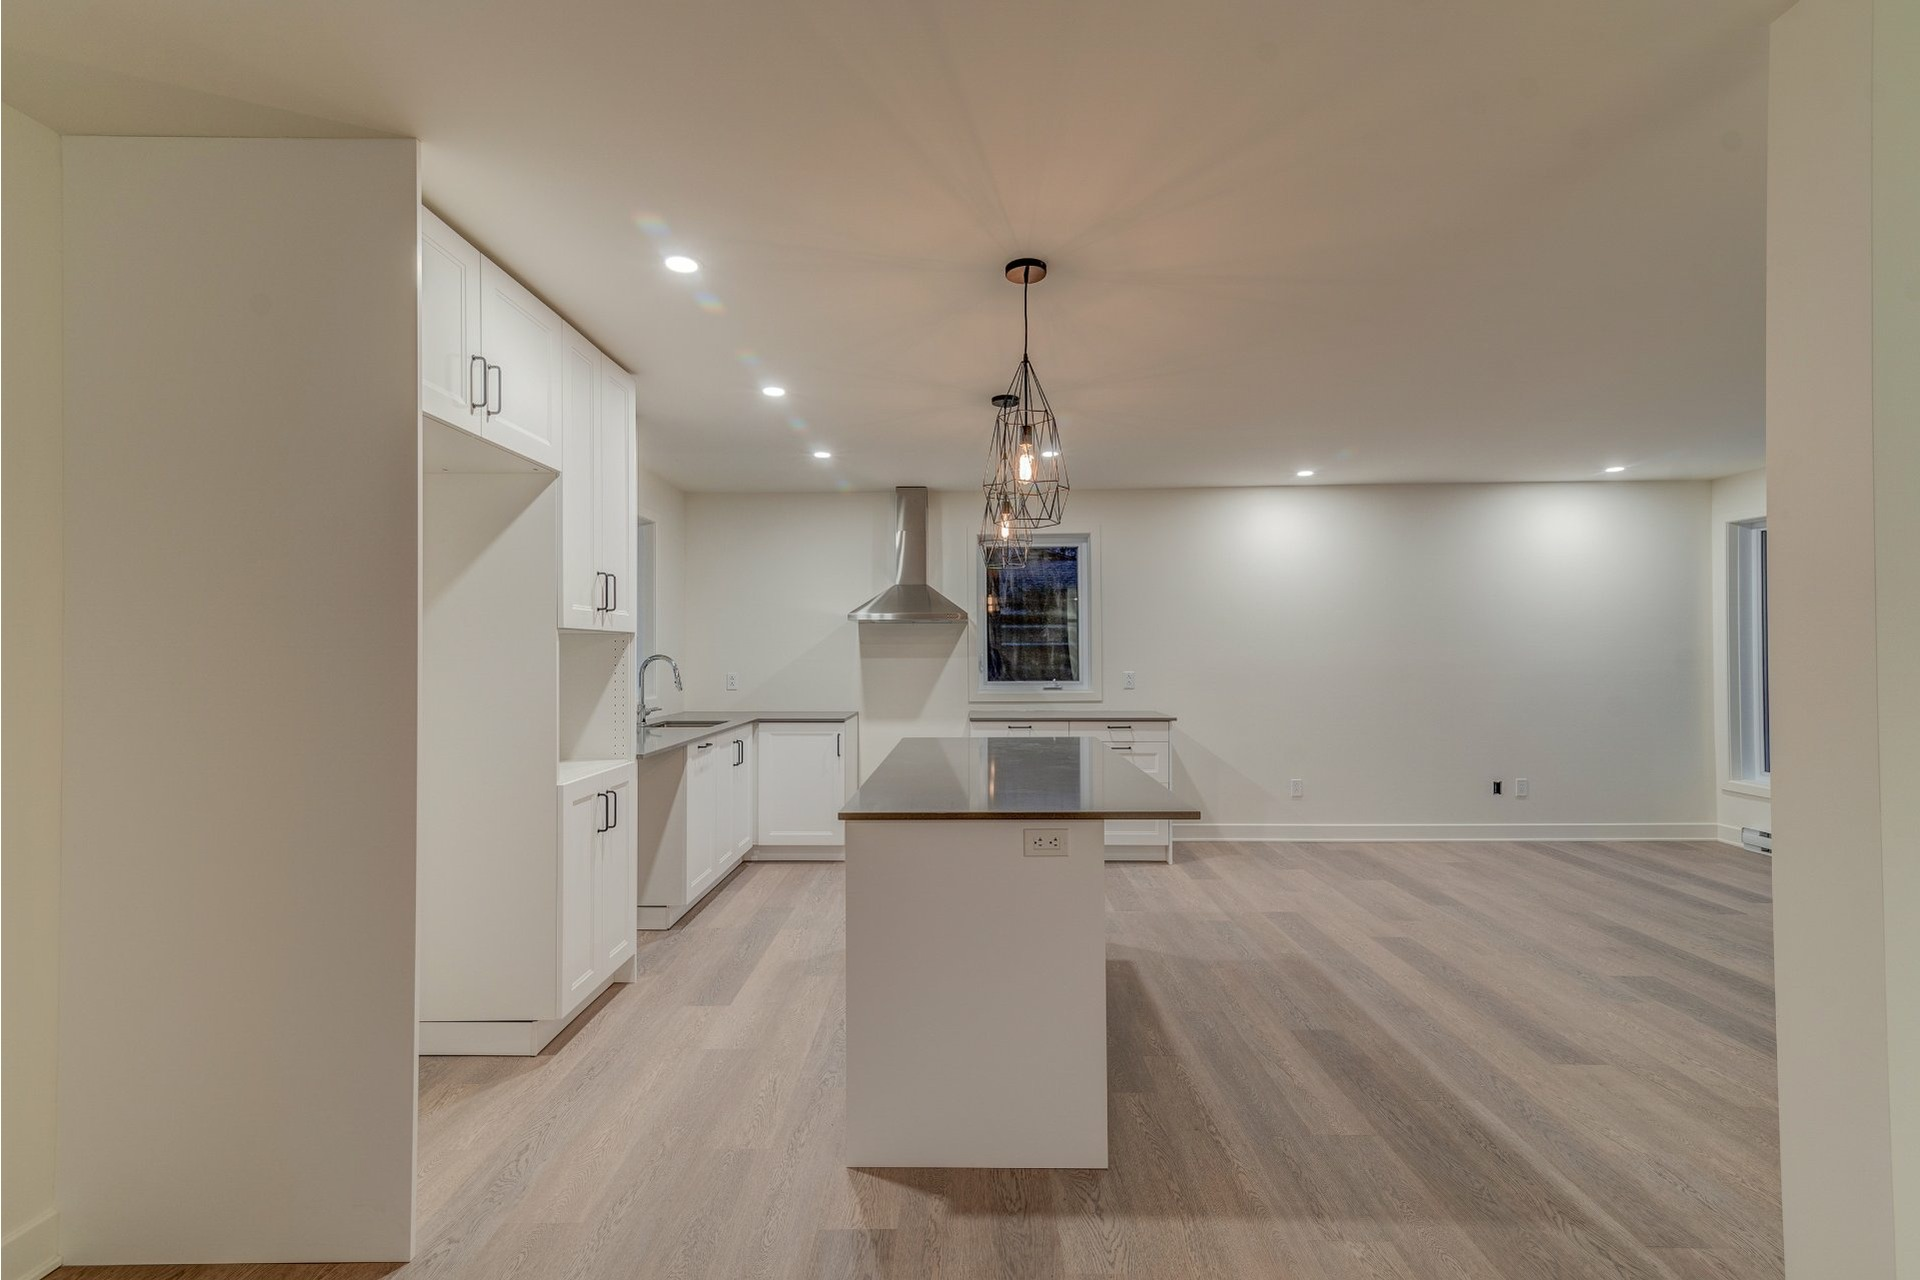 House For Sale Blainville 11 Rooms